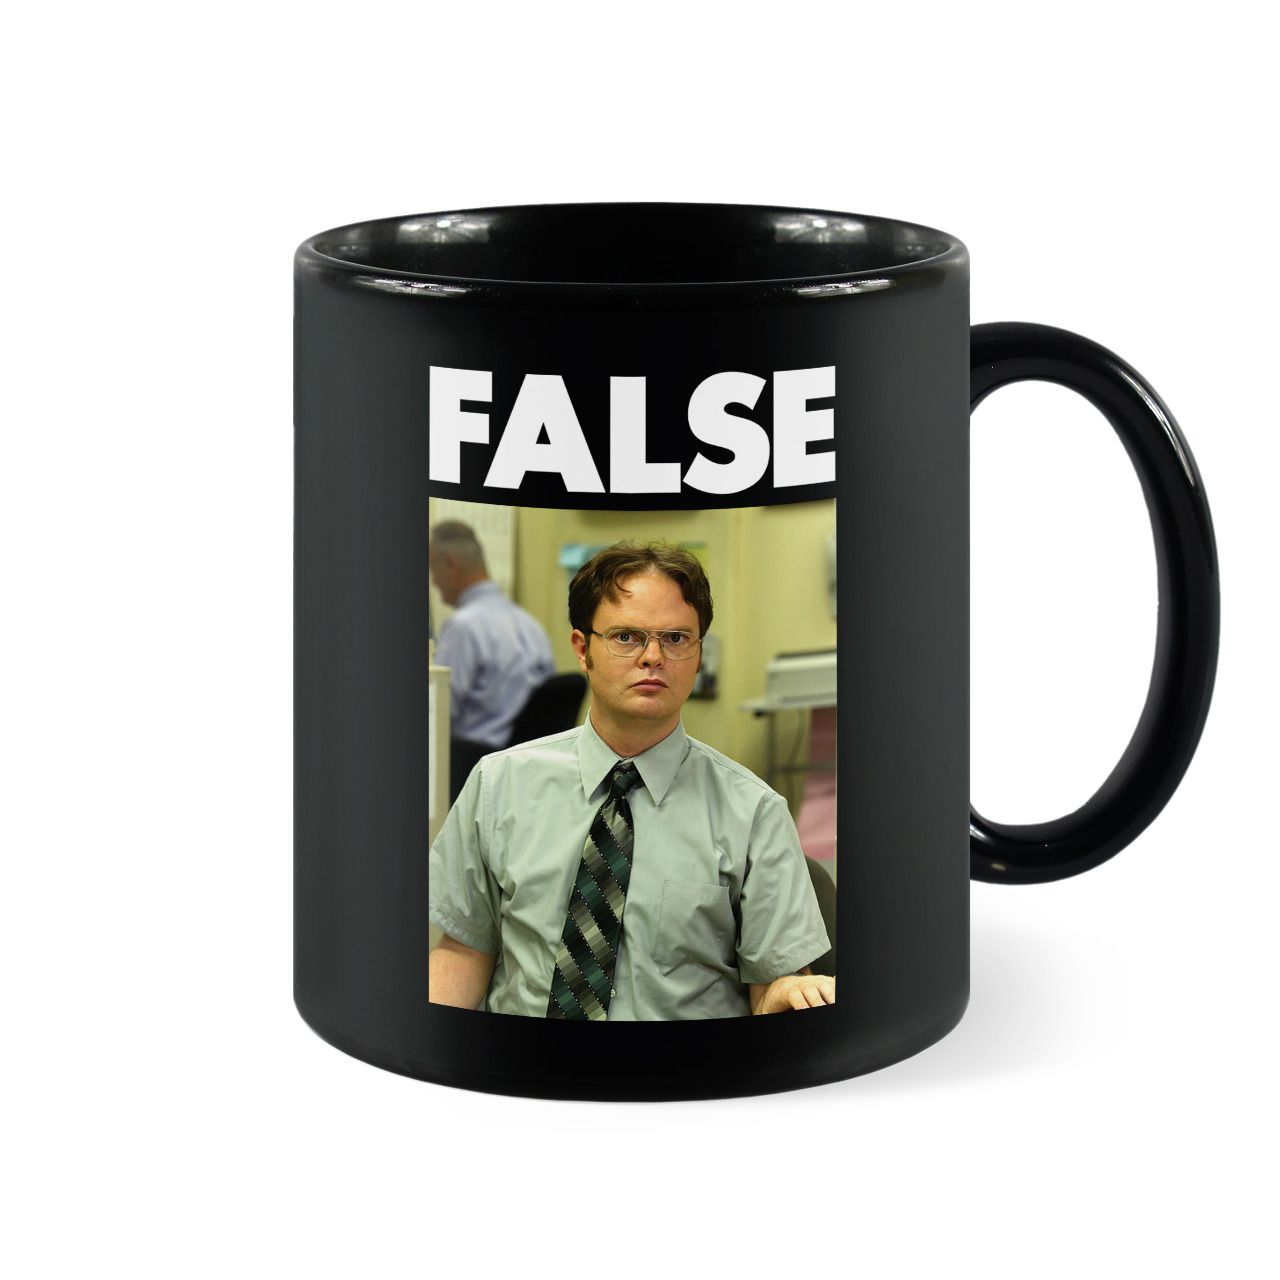 Caneca False: The Office - Exclusiva ToyShow